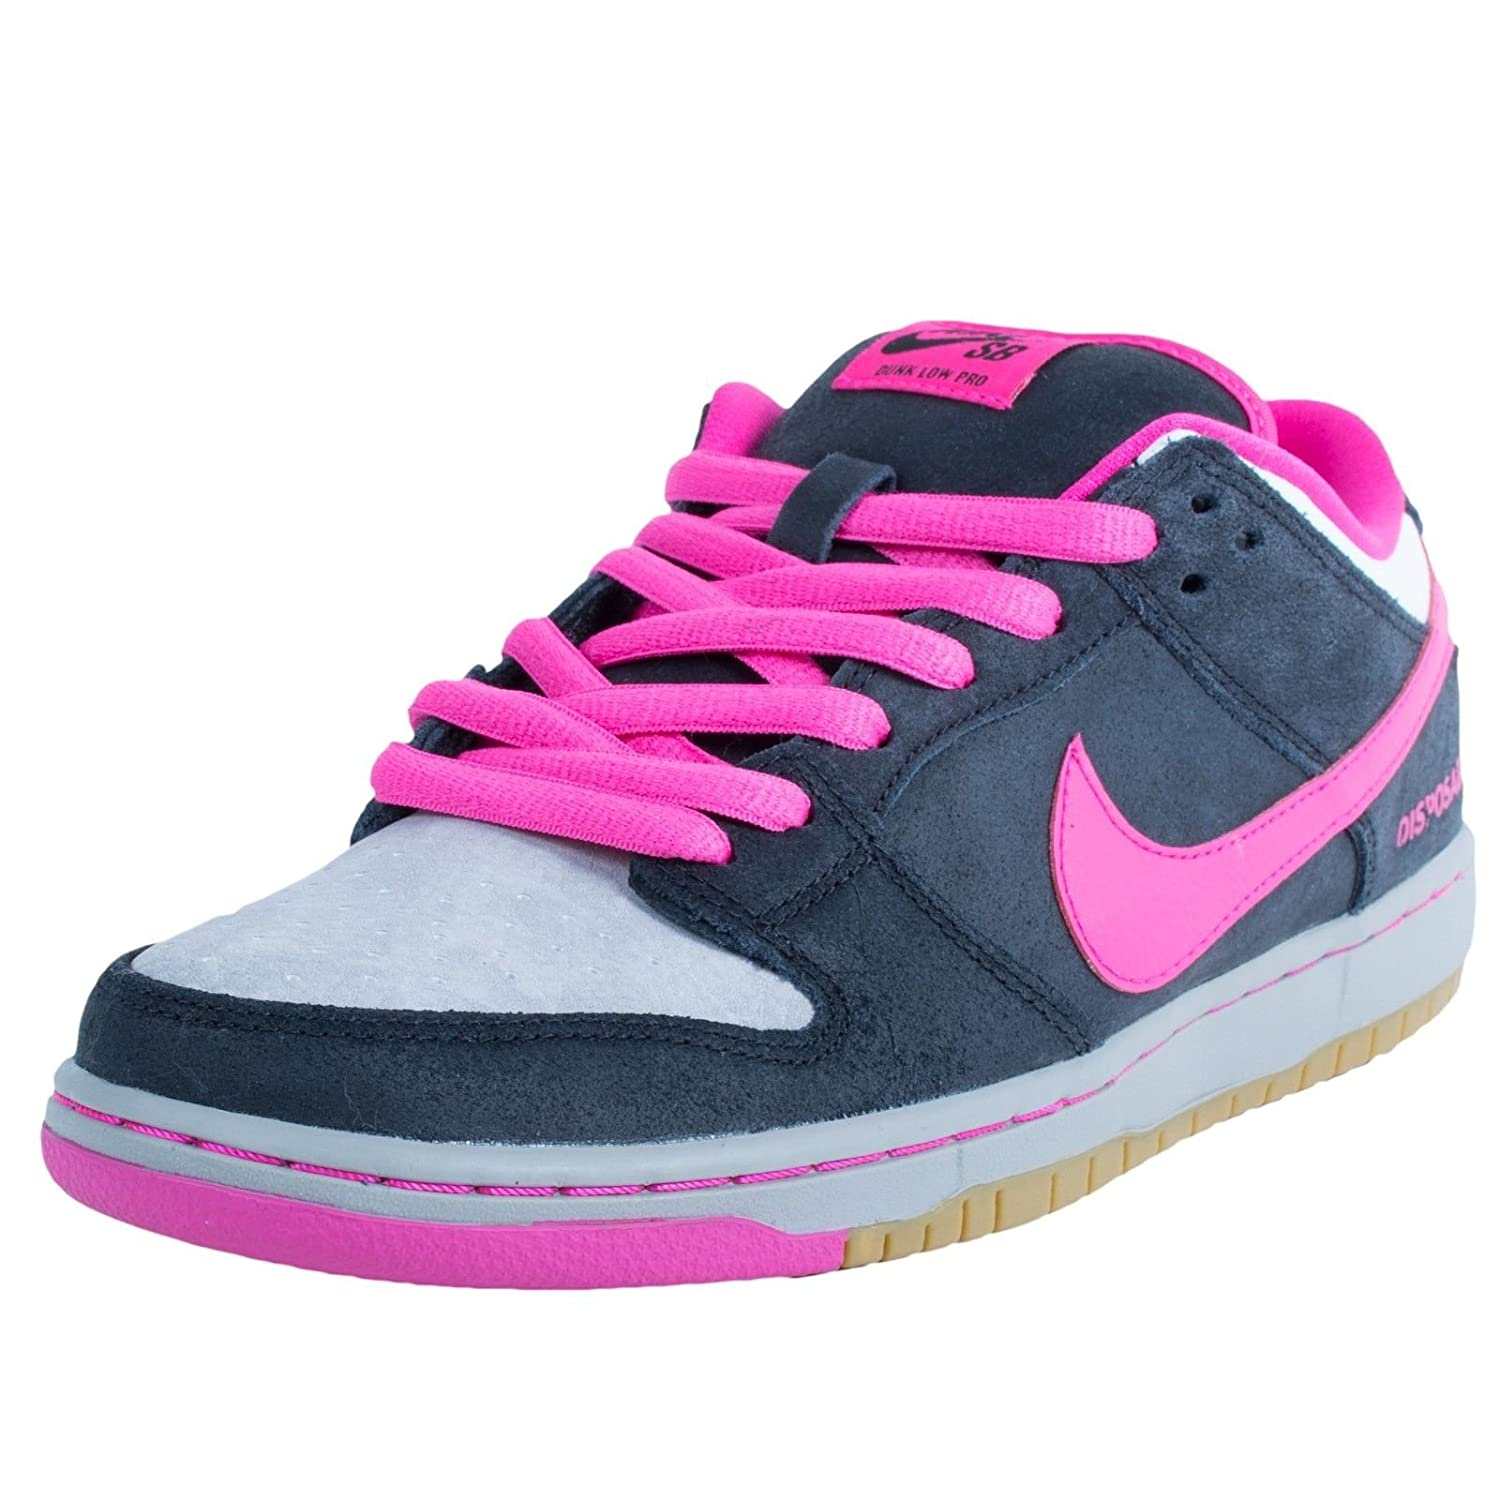 quality design 2d055 c0fa8 Amazon.com   Nike Mens Dunk Low Premium SB QS Disposable Black Pink  Foil-White Leather Skateboarding   Basketball